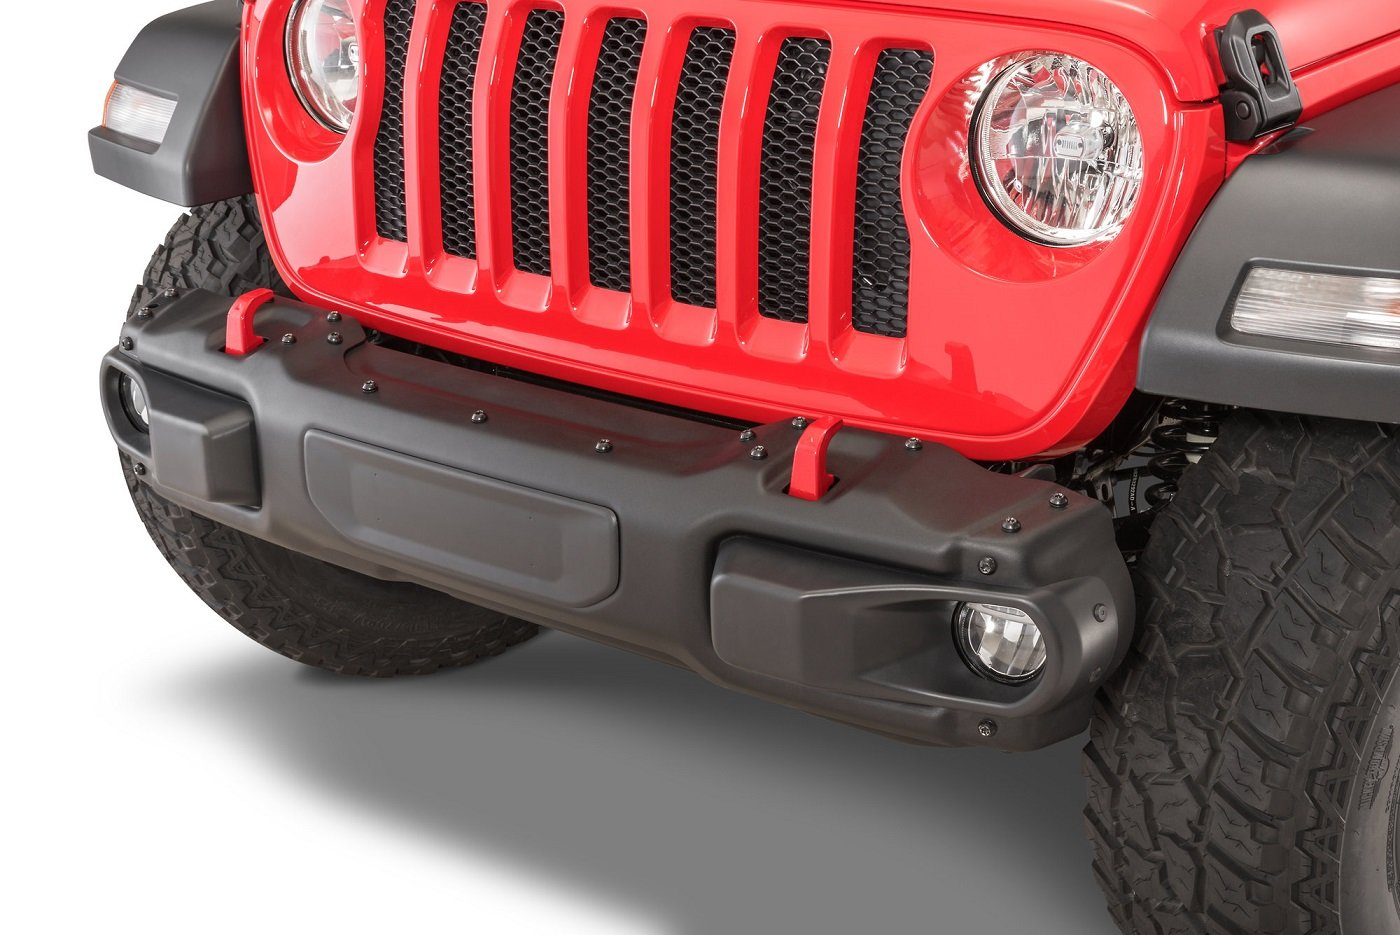 Mopar Rubicon Steel Stubby Front Bumper for Wrangler JL and Gladiator JT